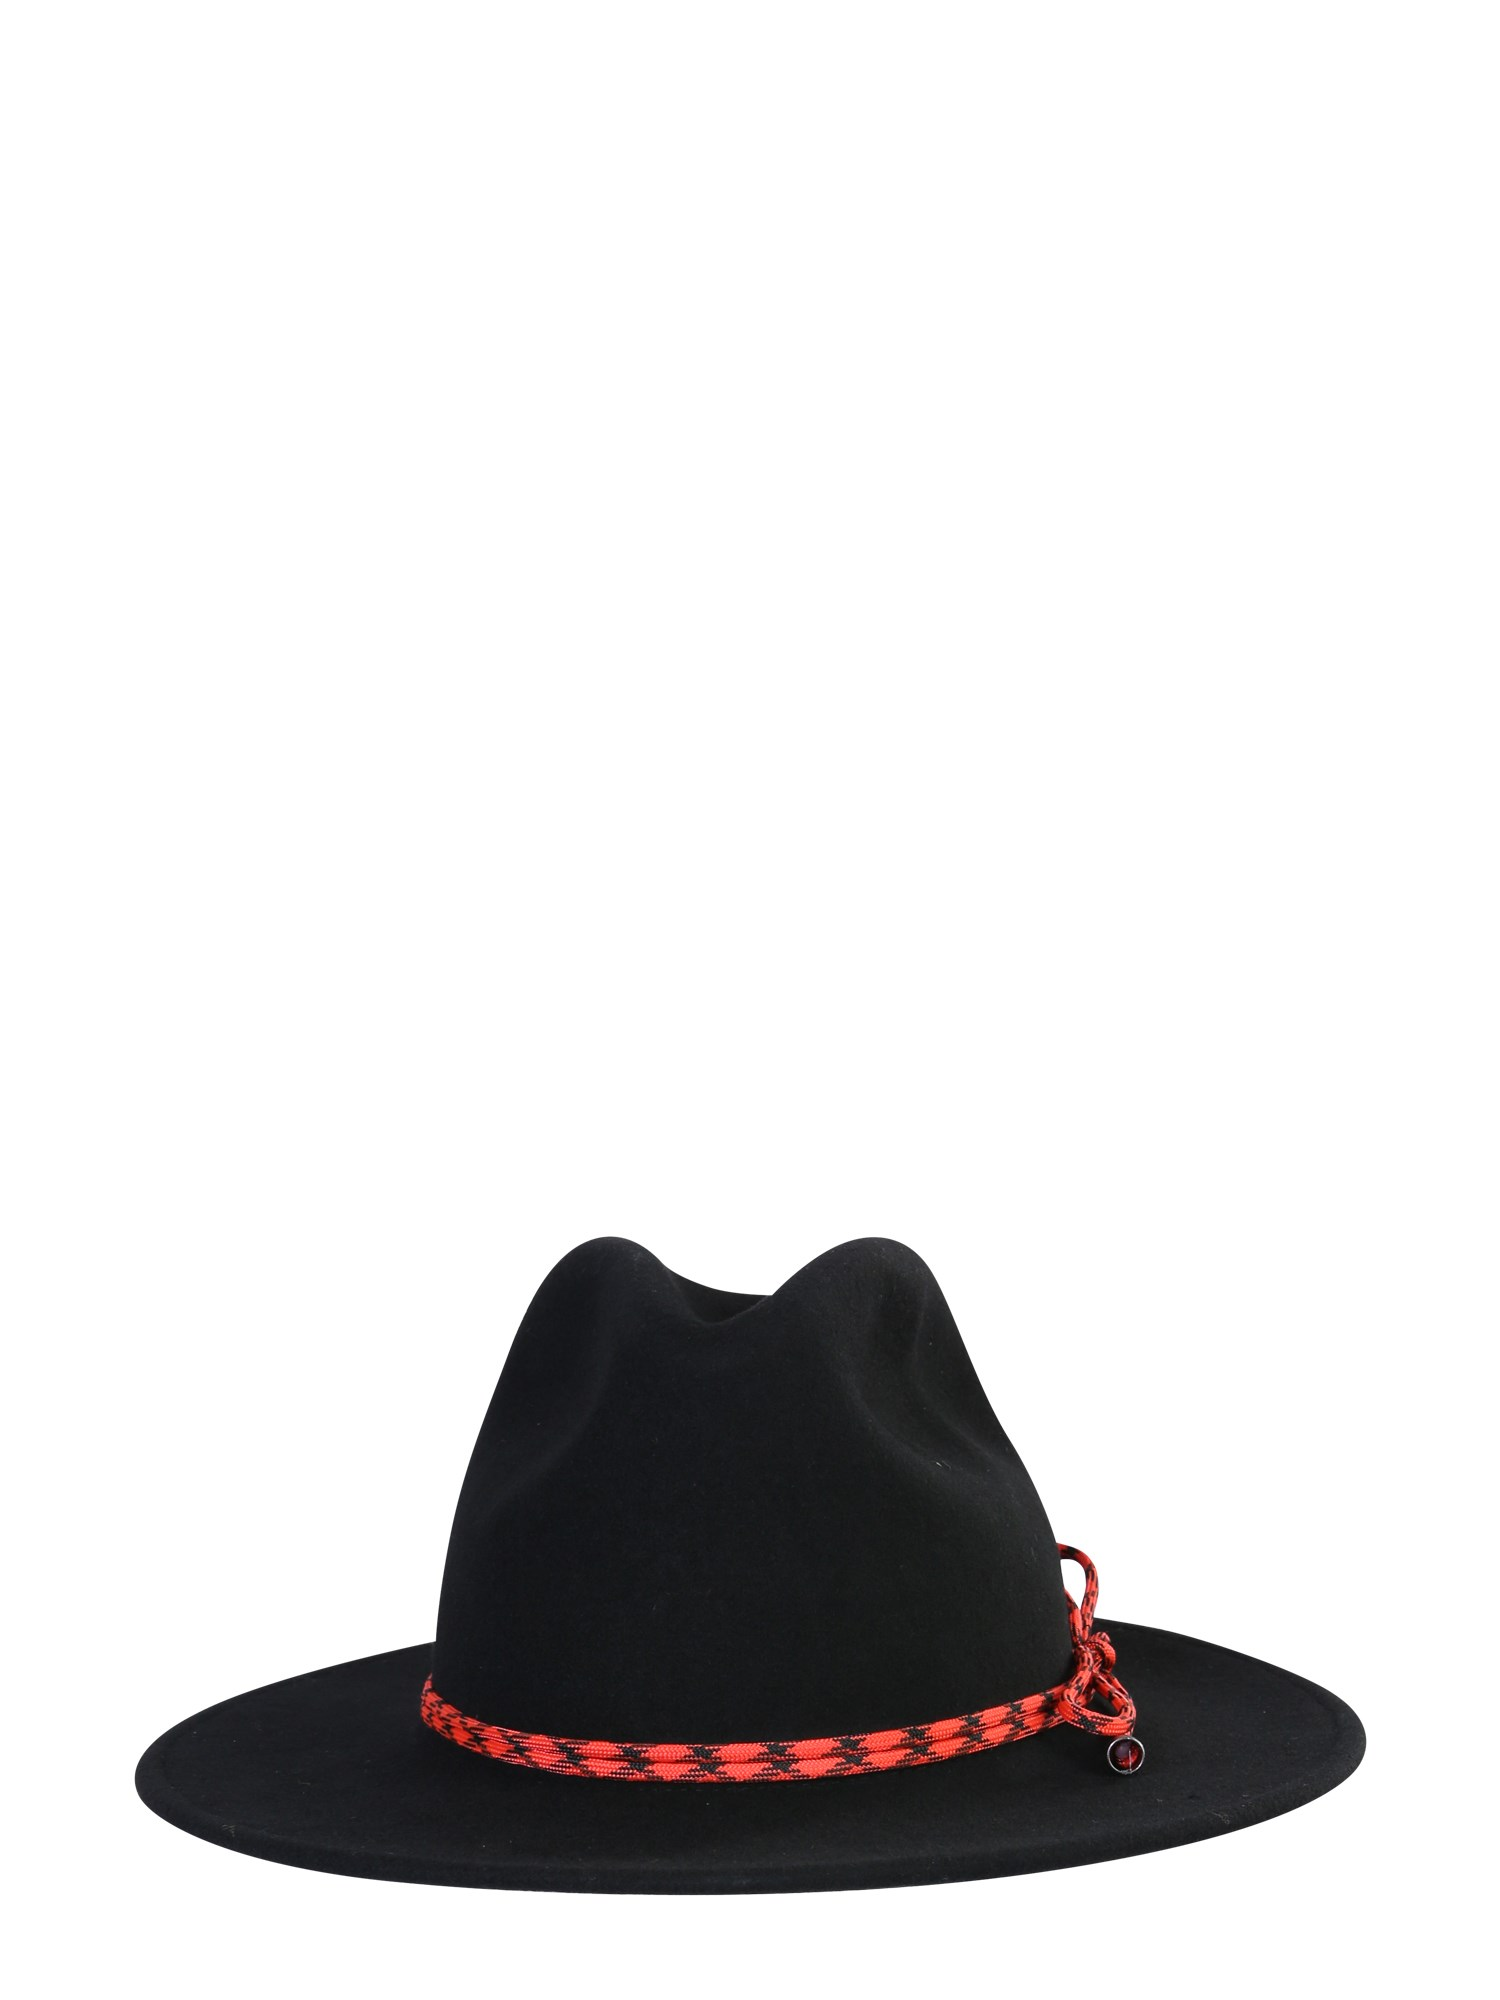 Paul Smith WIDE-BRIMMED HAT